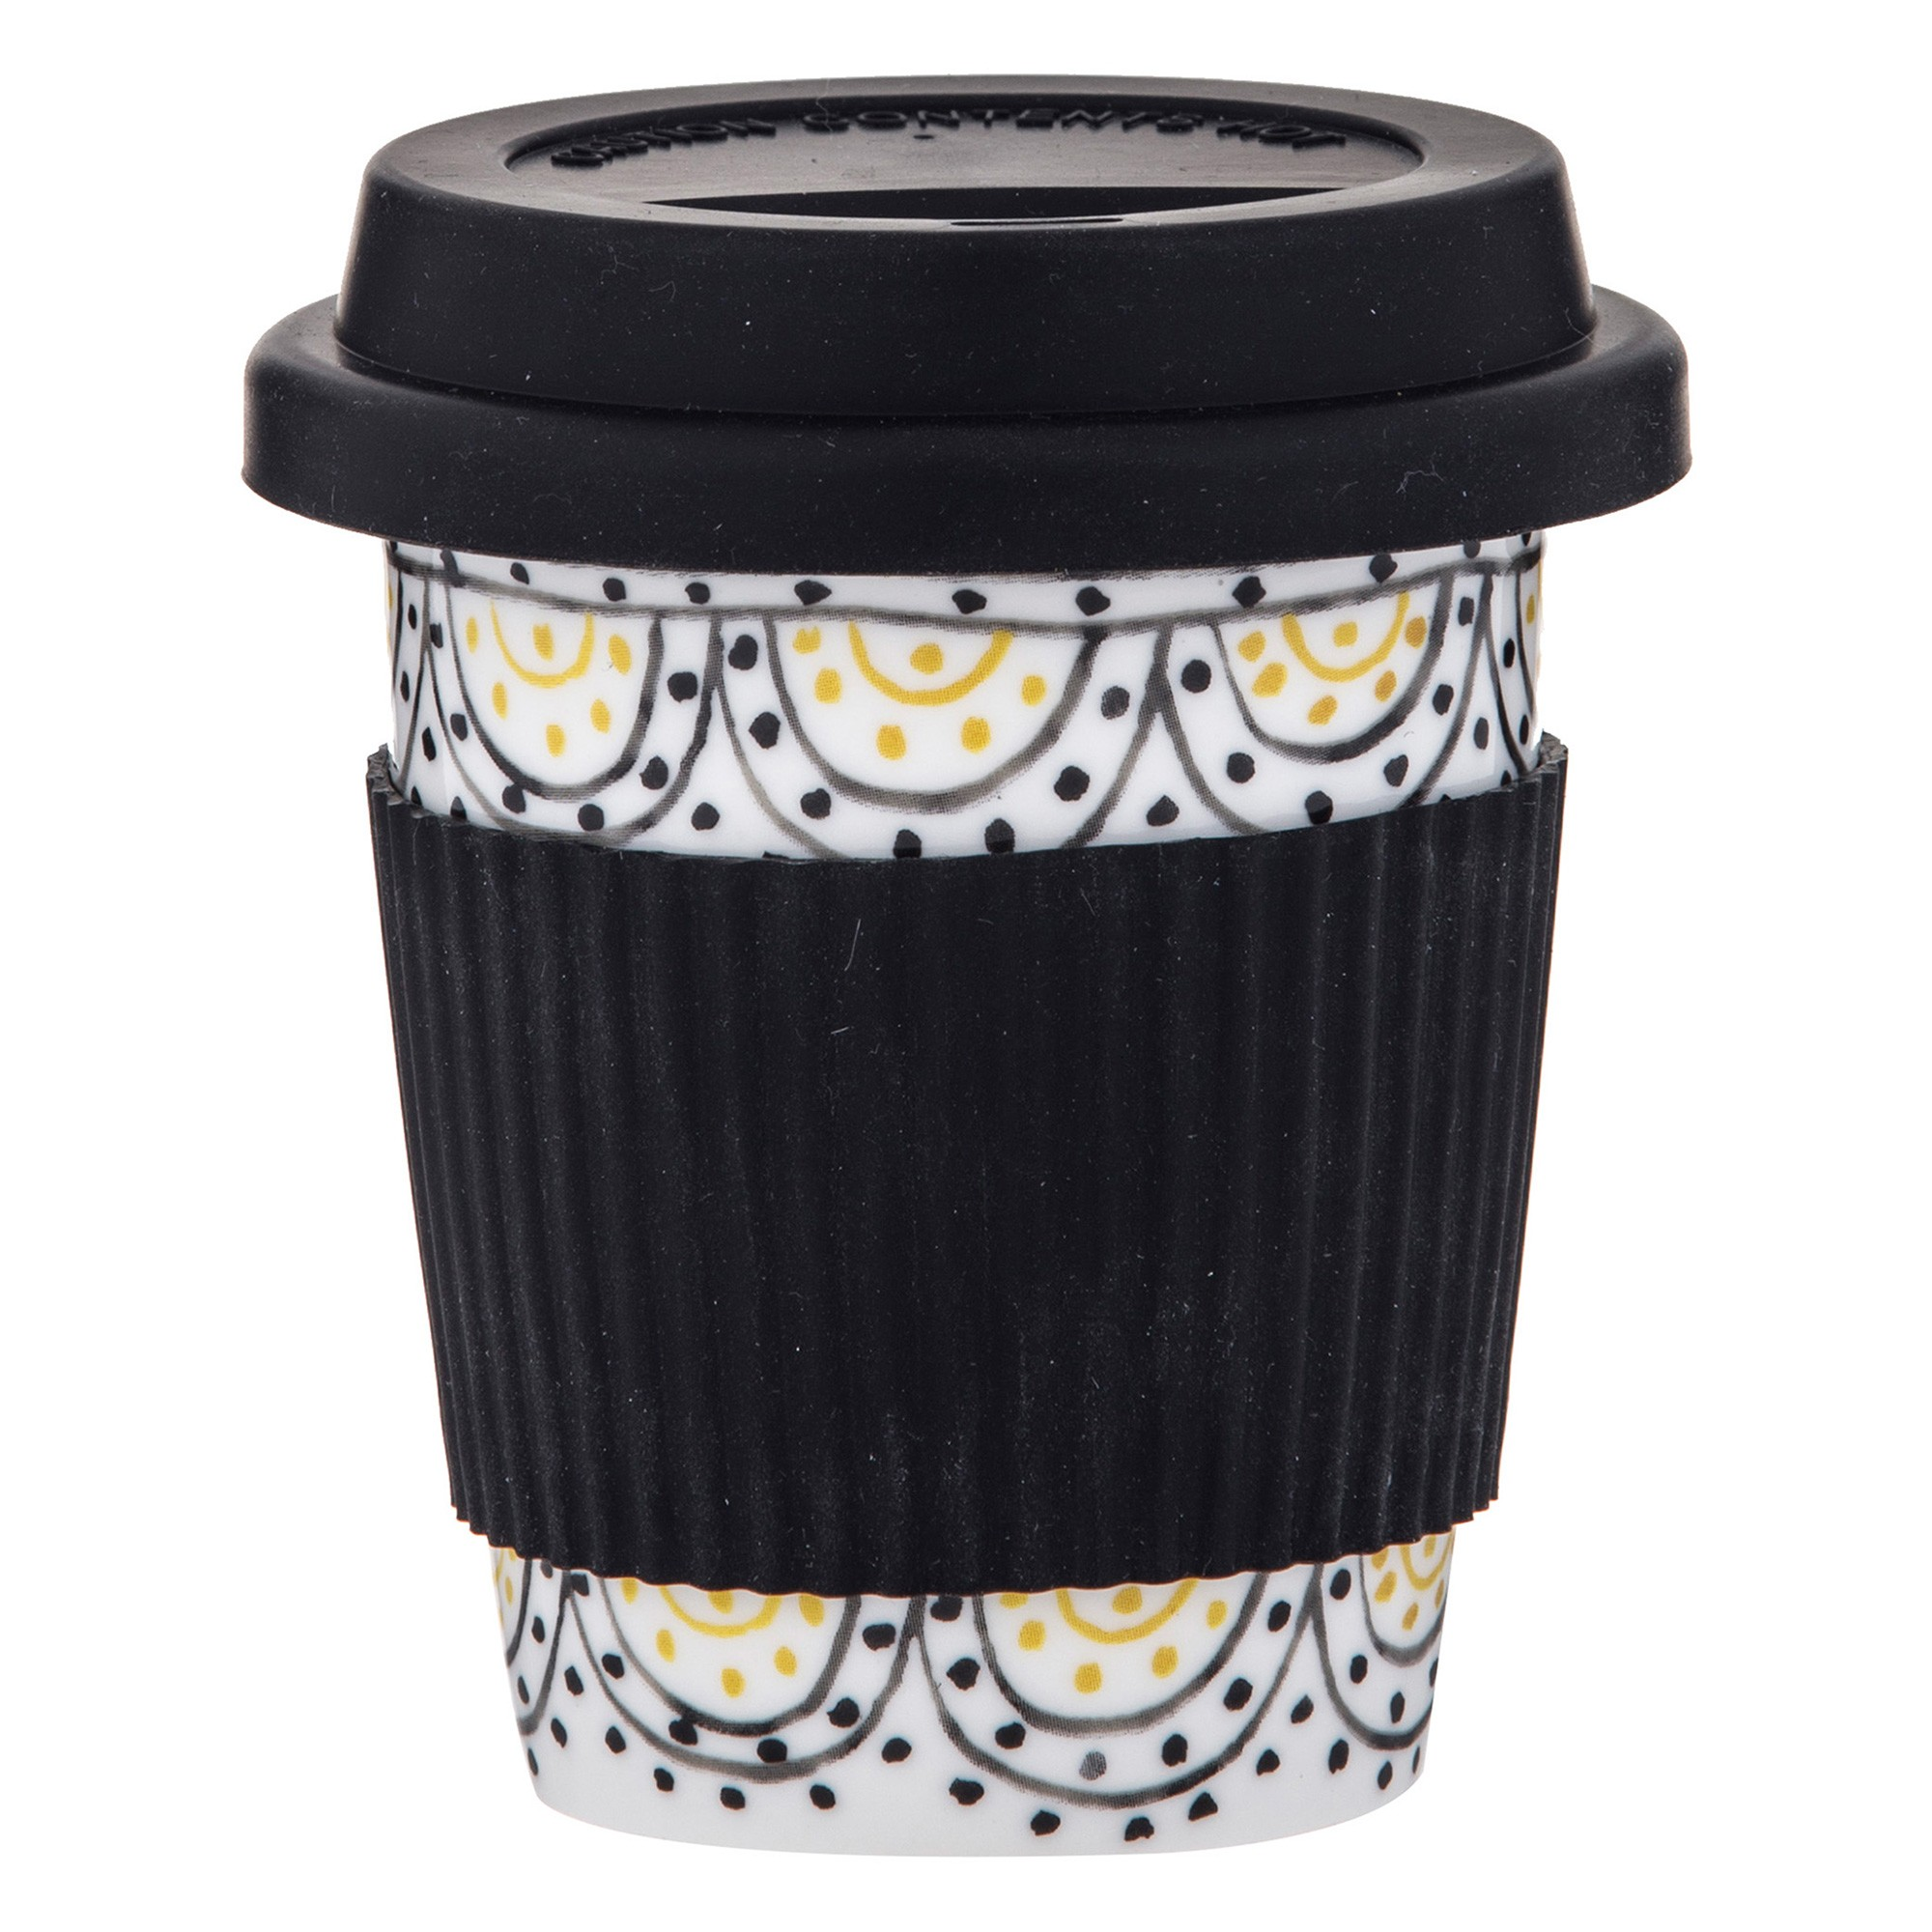 Ethnique Ceramic Travel Mug, Rings, 300ml